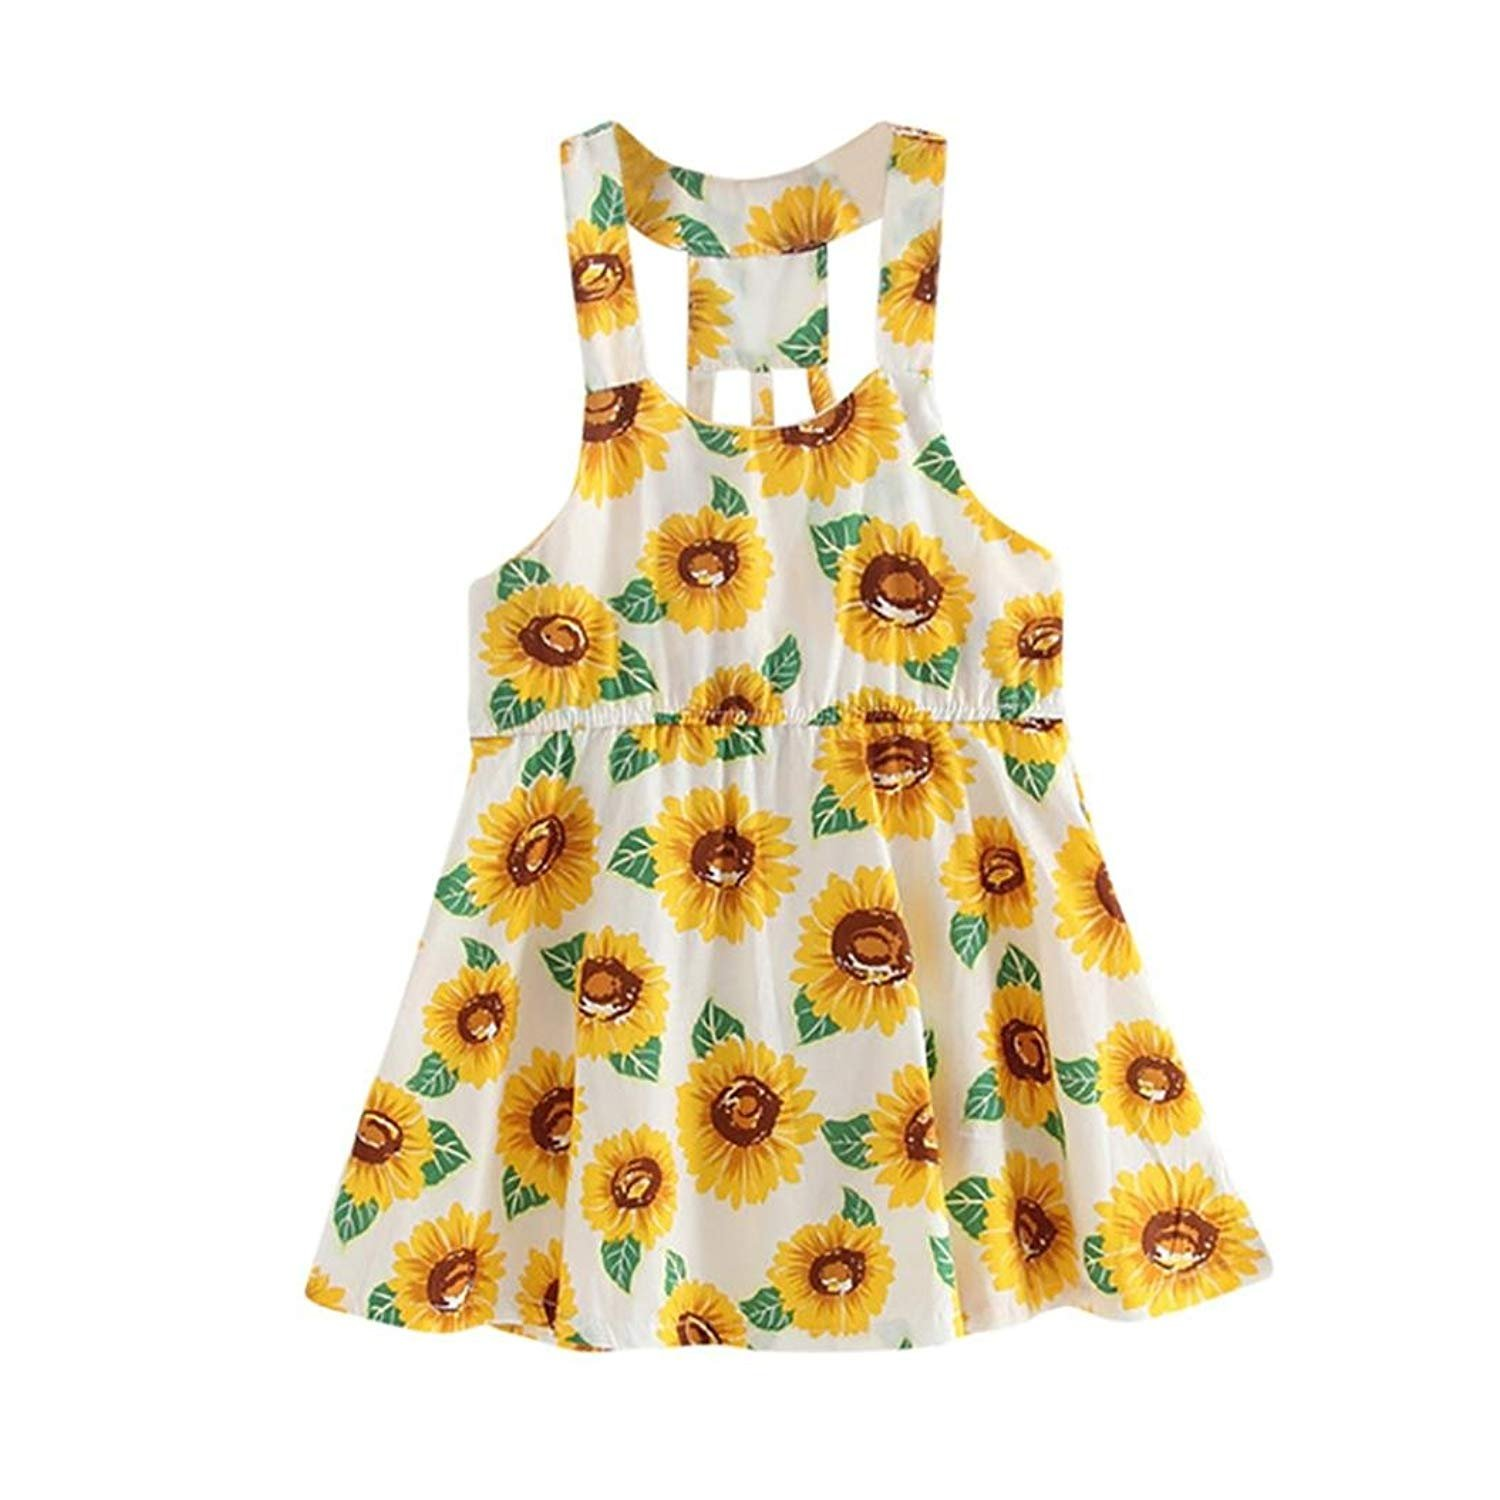 766d03eb284 Top 10 wholesale Infant Sunflower Dress - Chinabrands.com